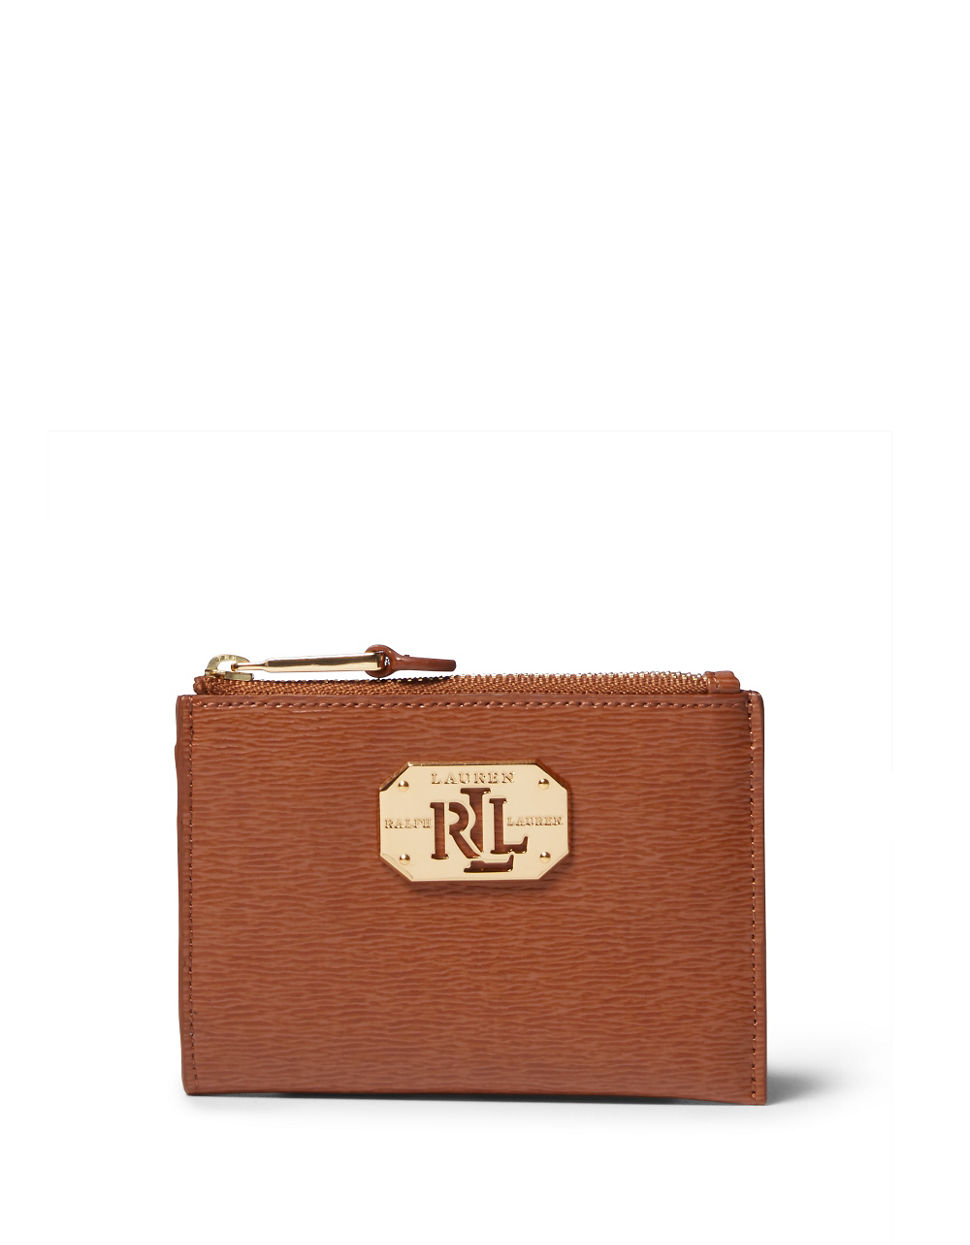 Lyst - Lauren By Ralph Lauren Newbury Leather Coin Pouch in Natural fb2113ab5f